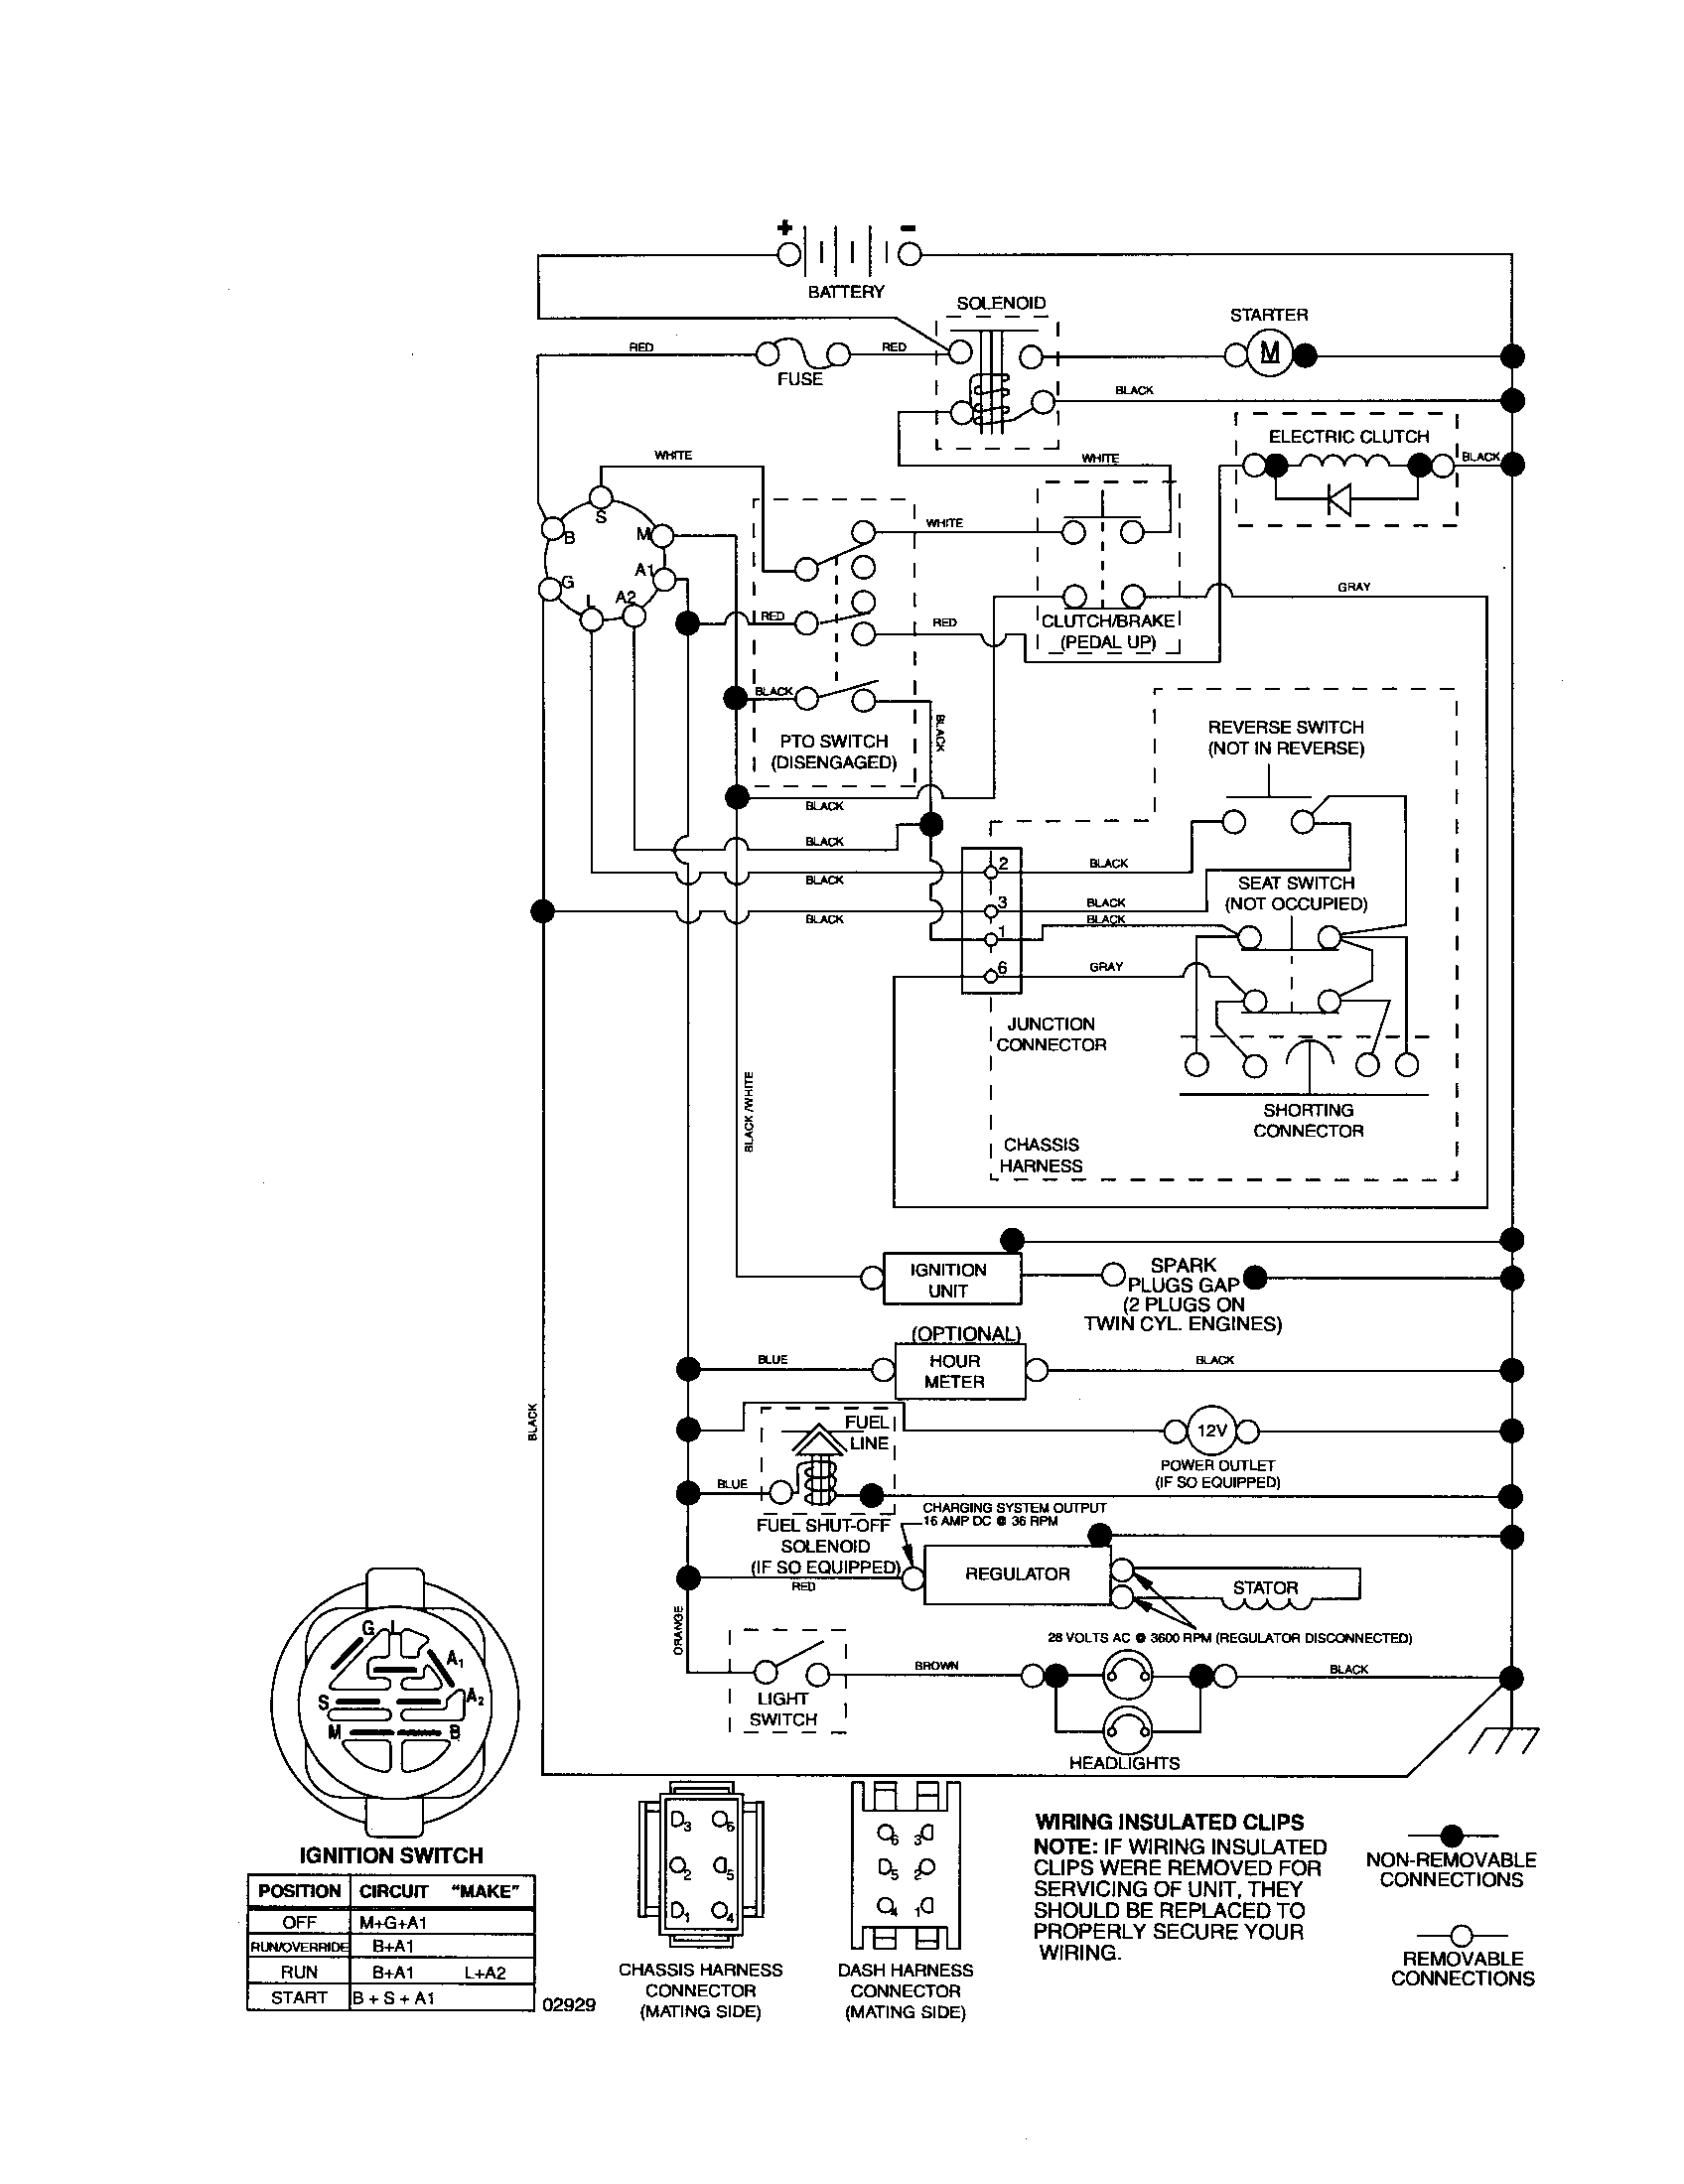 SCHEMATIC-TRACTOR Diagram & Parts List for Model GTH2448T